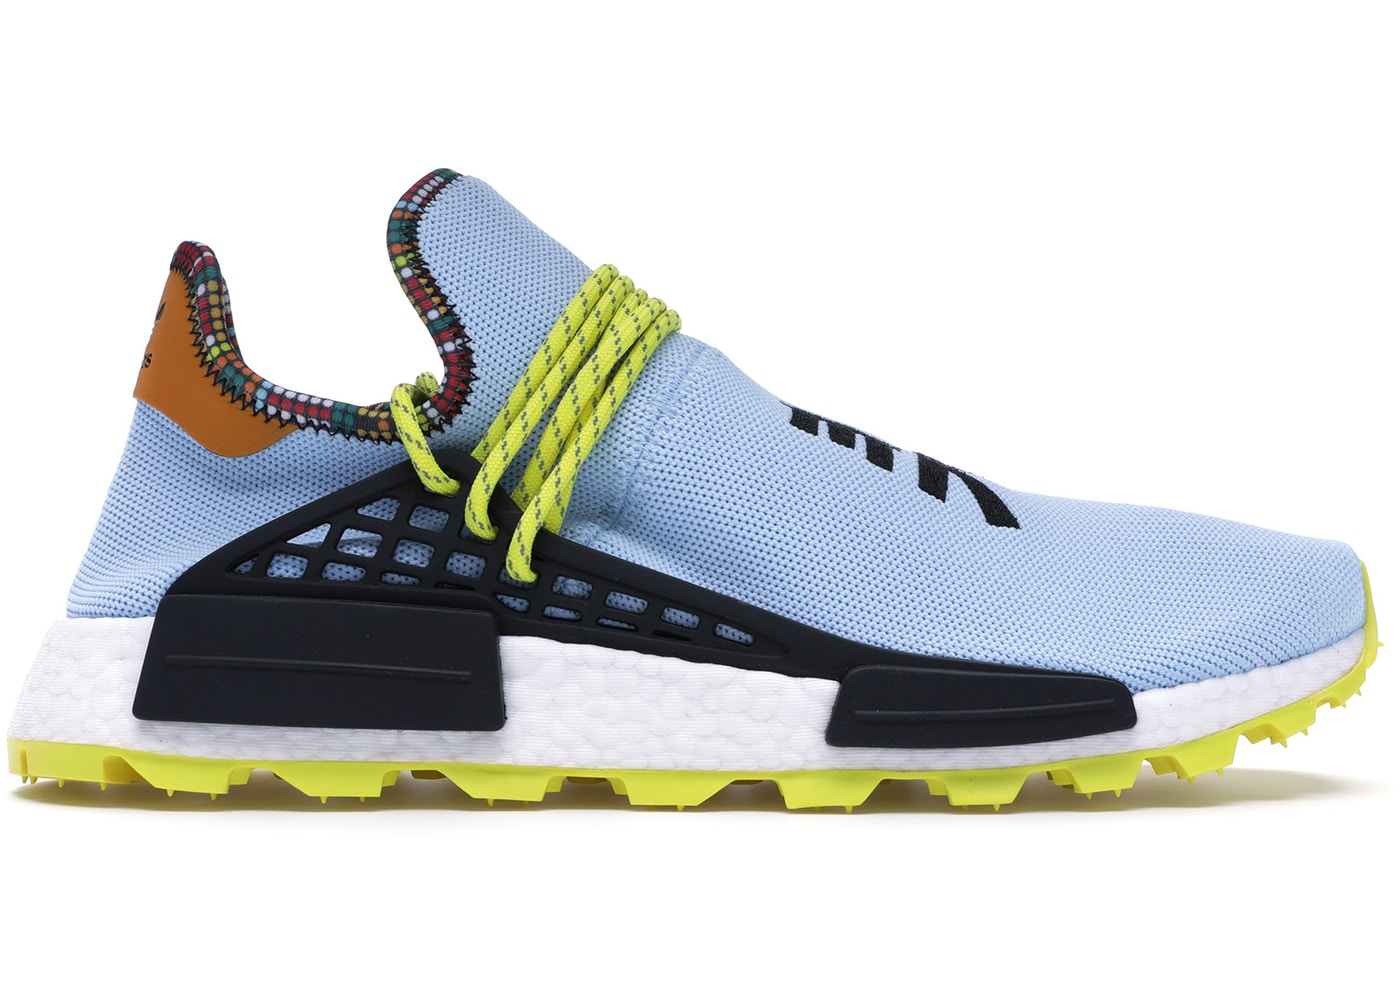 nouveau produit d0562 fb6c5 Buy adidas NMD HU Shoes & Deadstock Sneakers